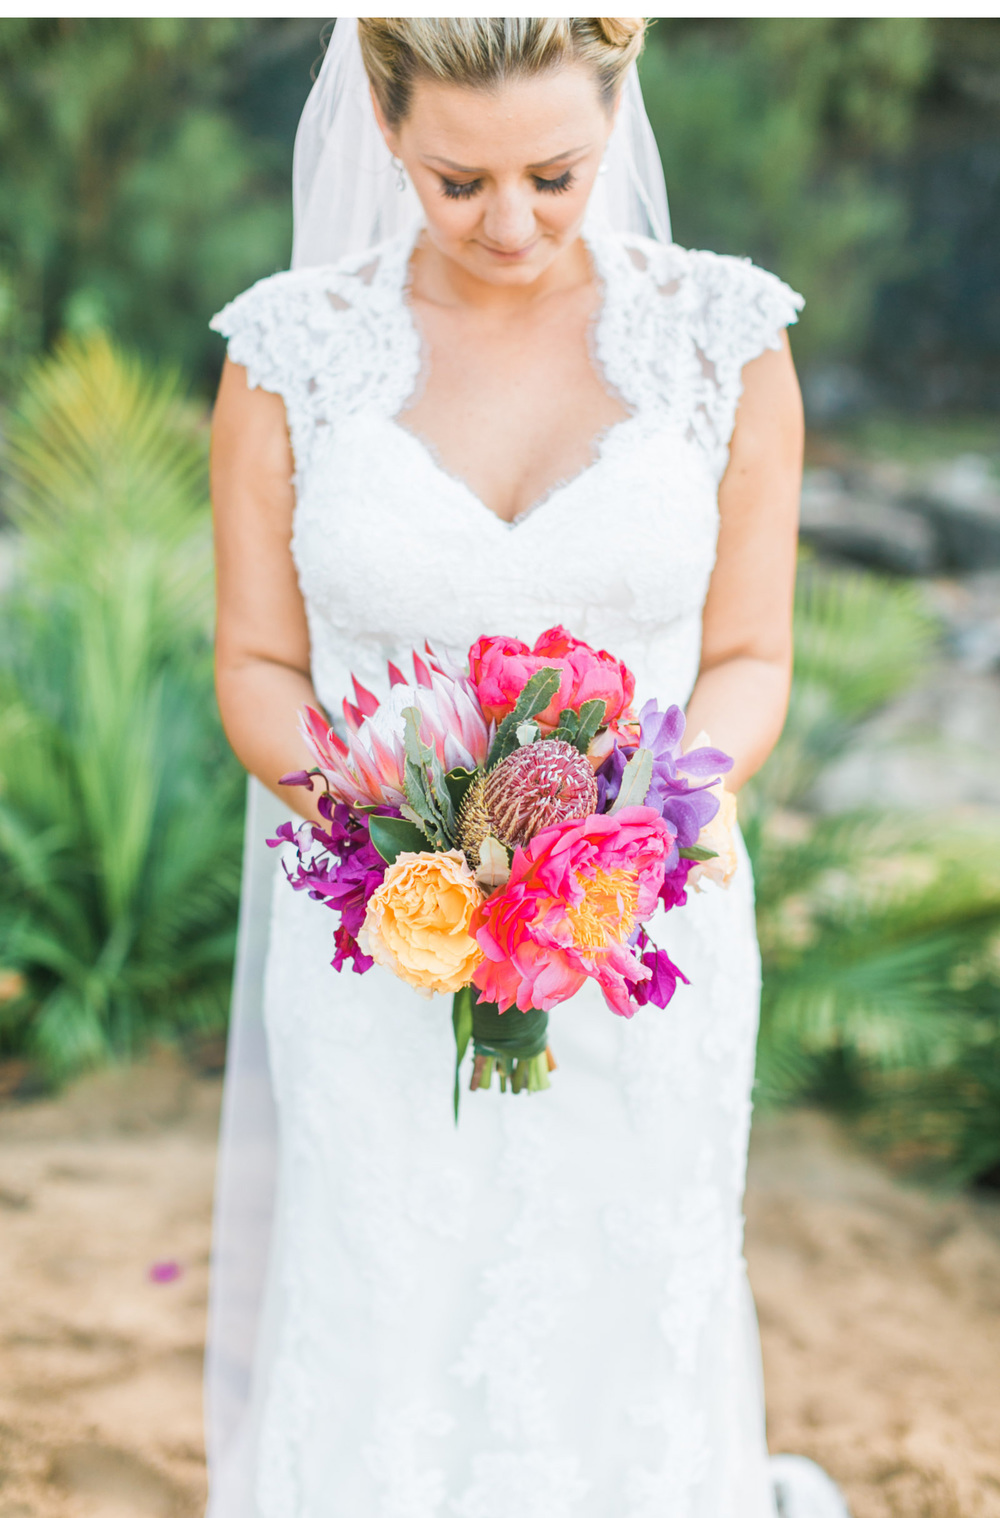 Natalie-Schutt-Photography--Style-Me-Pretty-Maui-Wedding_03.jpg